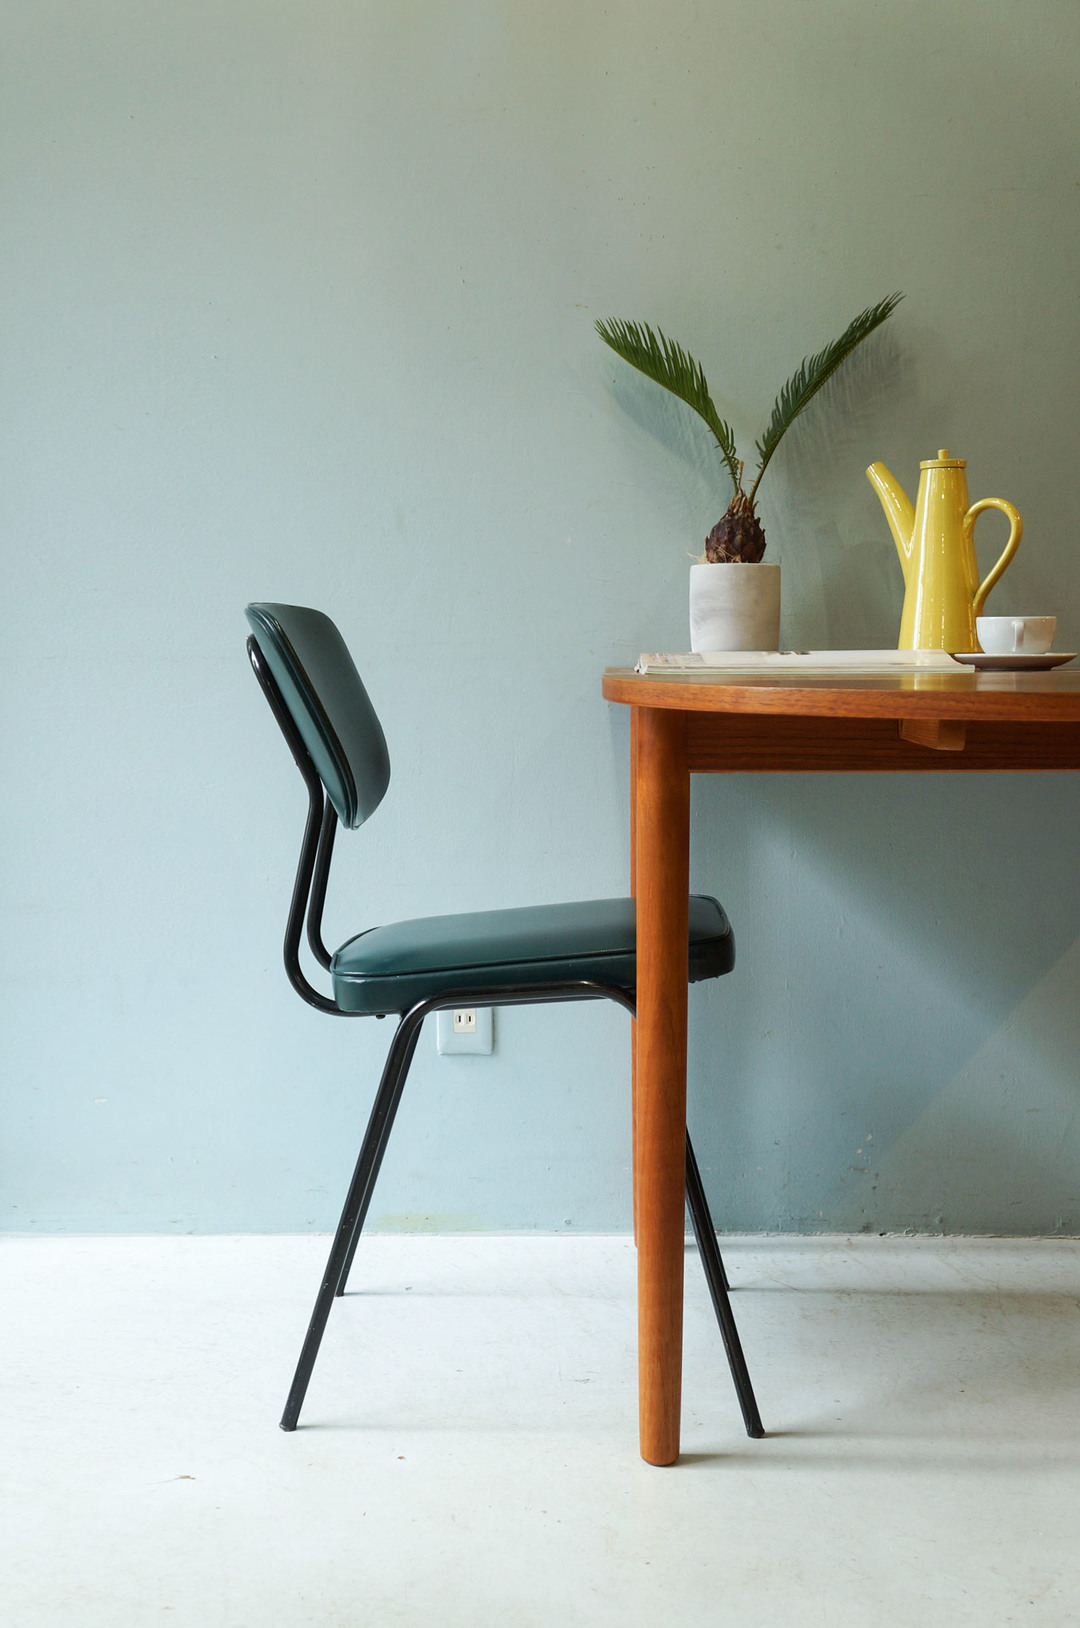 Dutch Vintage Dining Chair Steel Pipe x Vinyl Leather/オランダヴィンテージ ダイニングチェア スチール ビニールレザー 椅子 インダストリアル